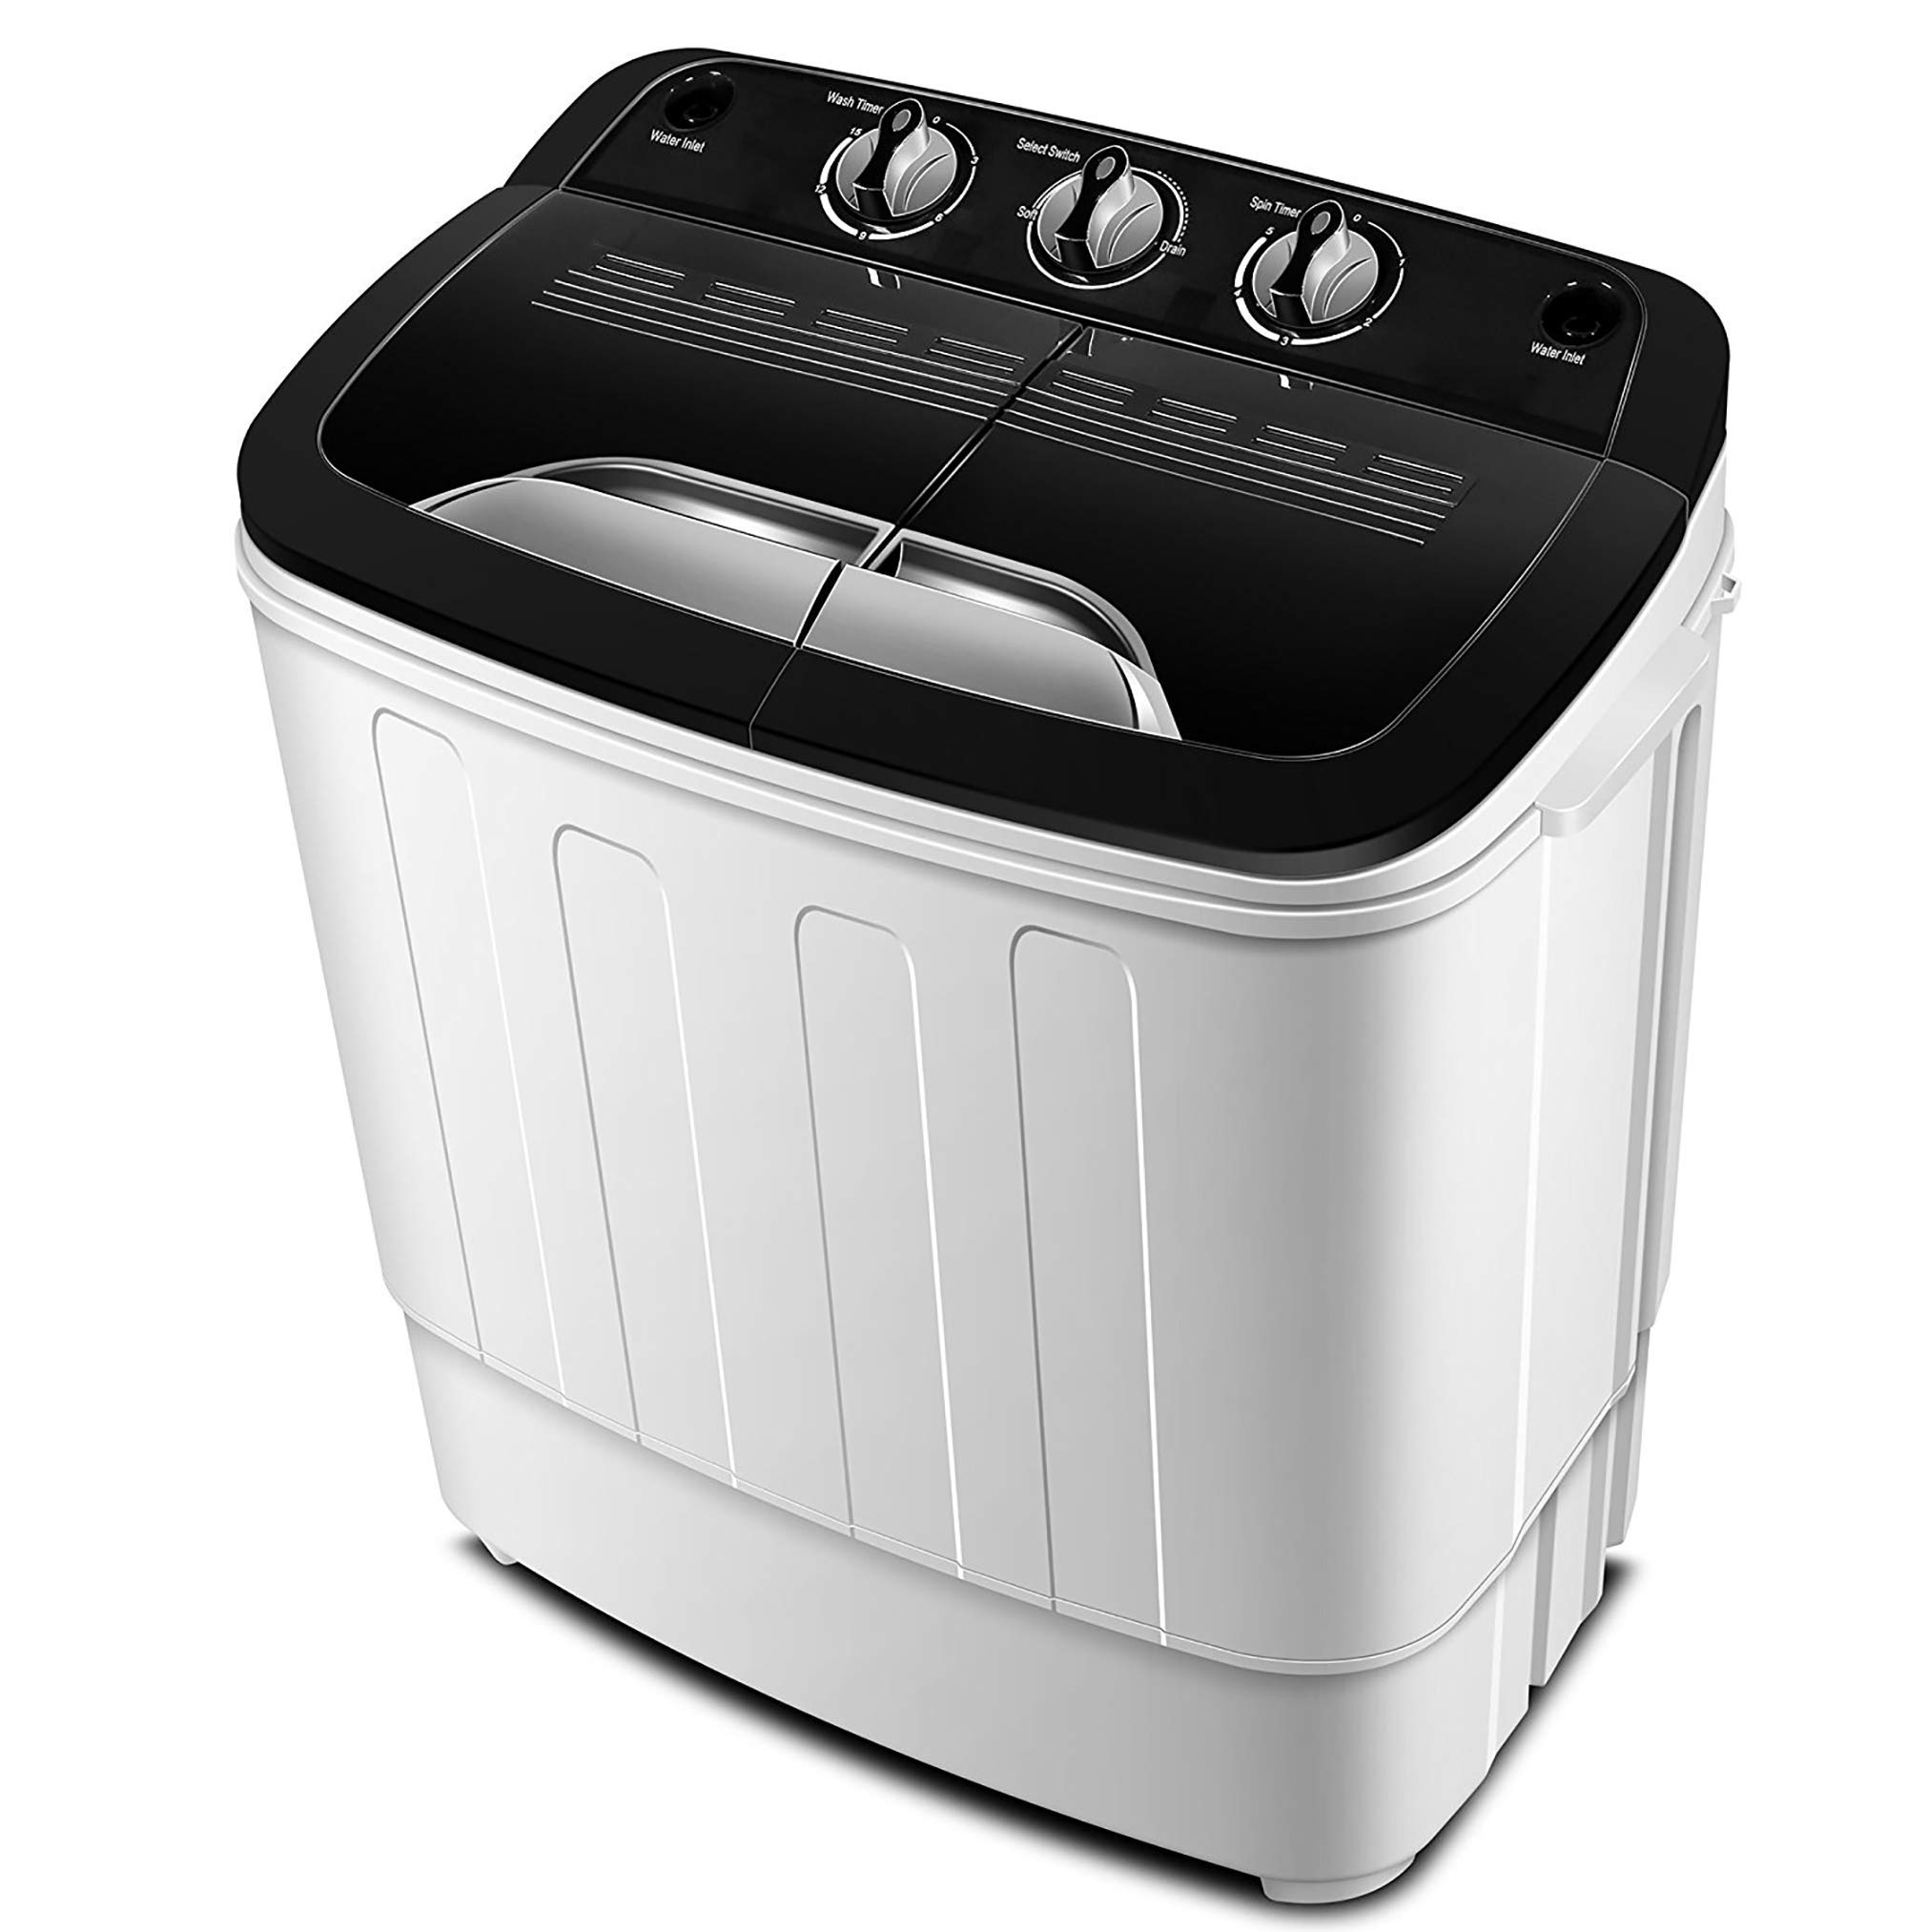 Portable Washing Machine TG23 - Twin Tub Washer Machine with Wash and Spin Cycle Compartments by ThinkGizmos (Trademark Protected) by Think Gizmos